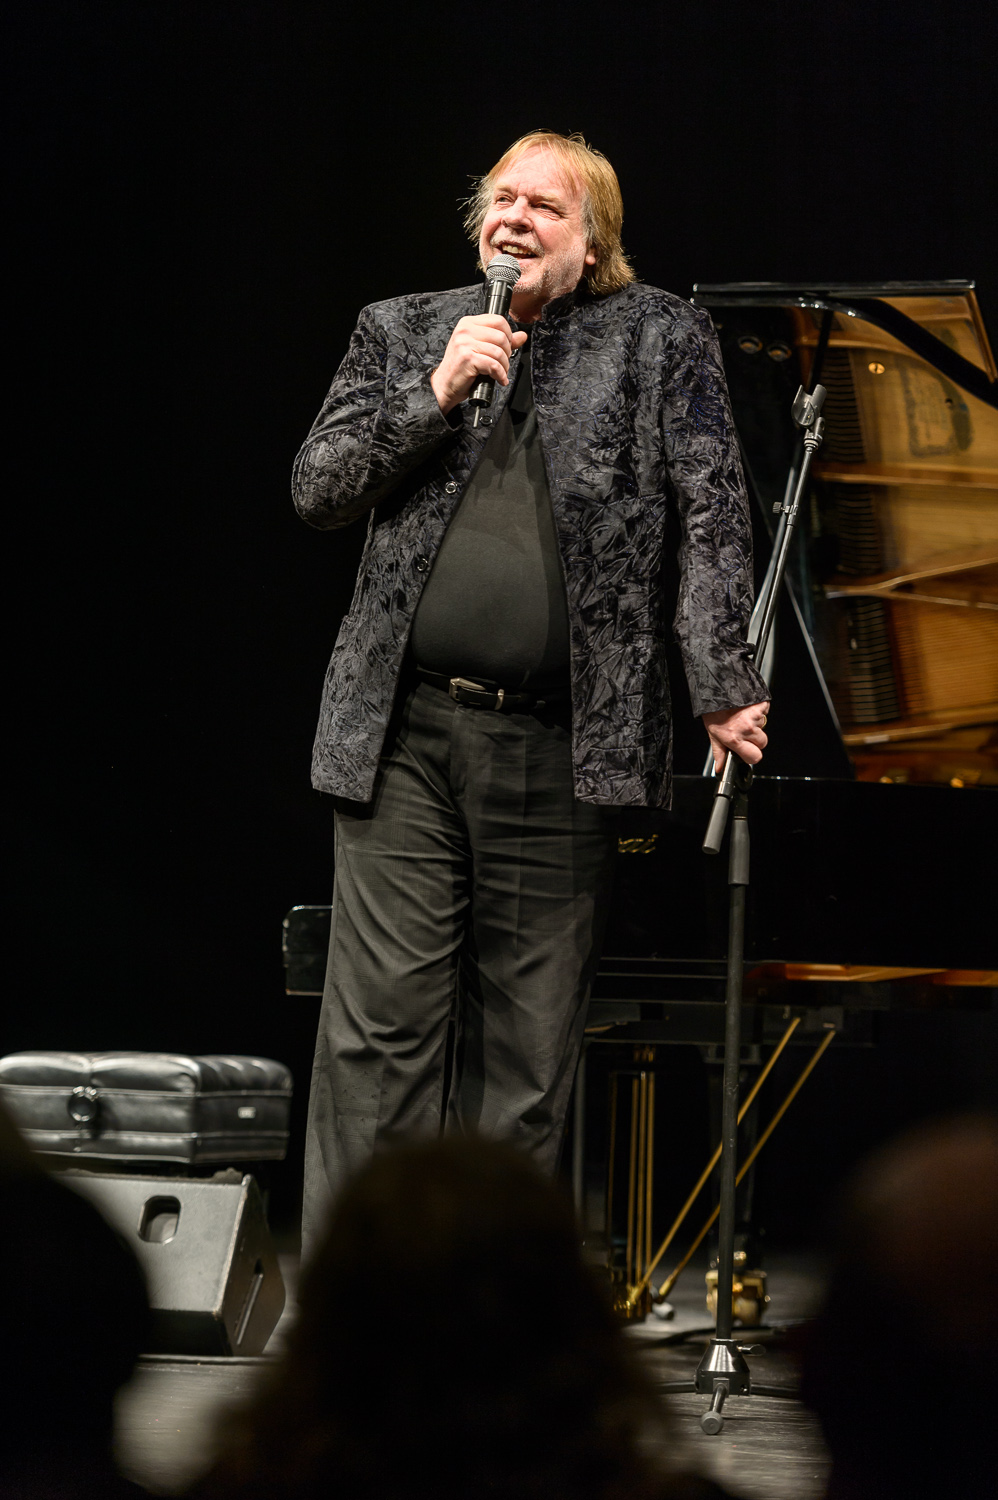 Rick Wakeman_October 07, 2012_096.jpg